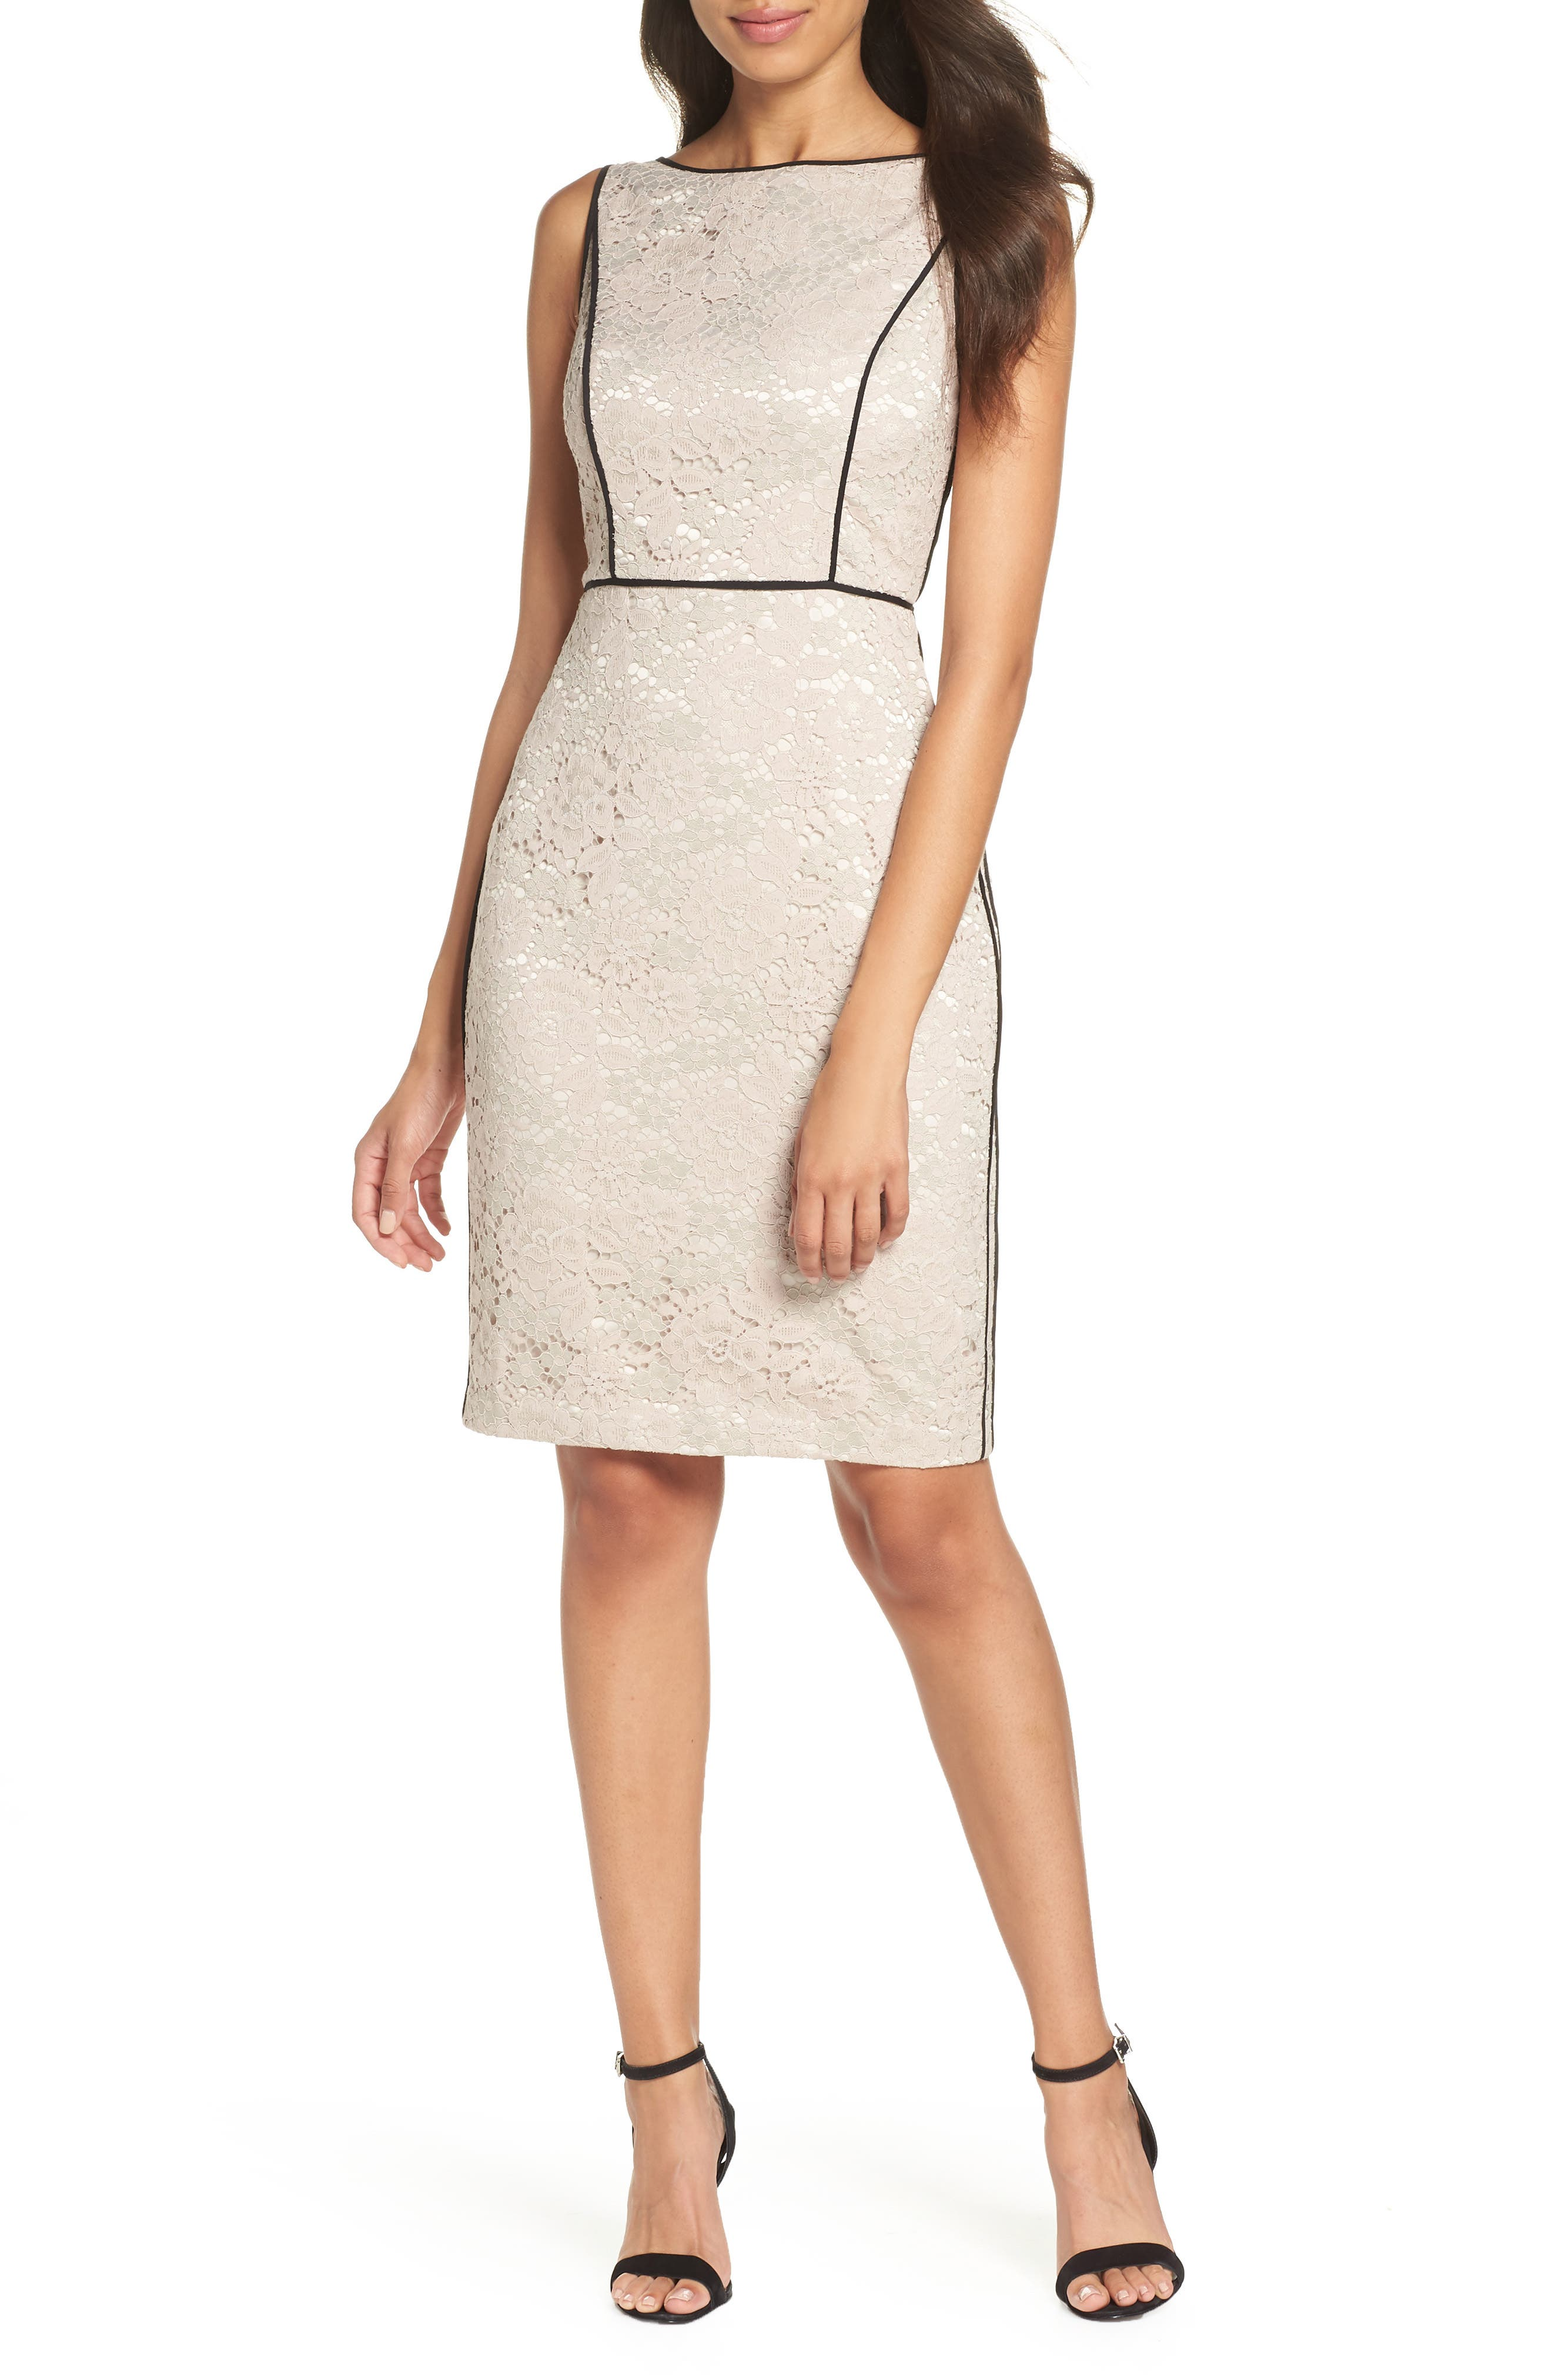 Piped Lace Sheath Dress,                             Main thumbnail 1, color,                             256